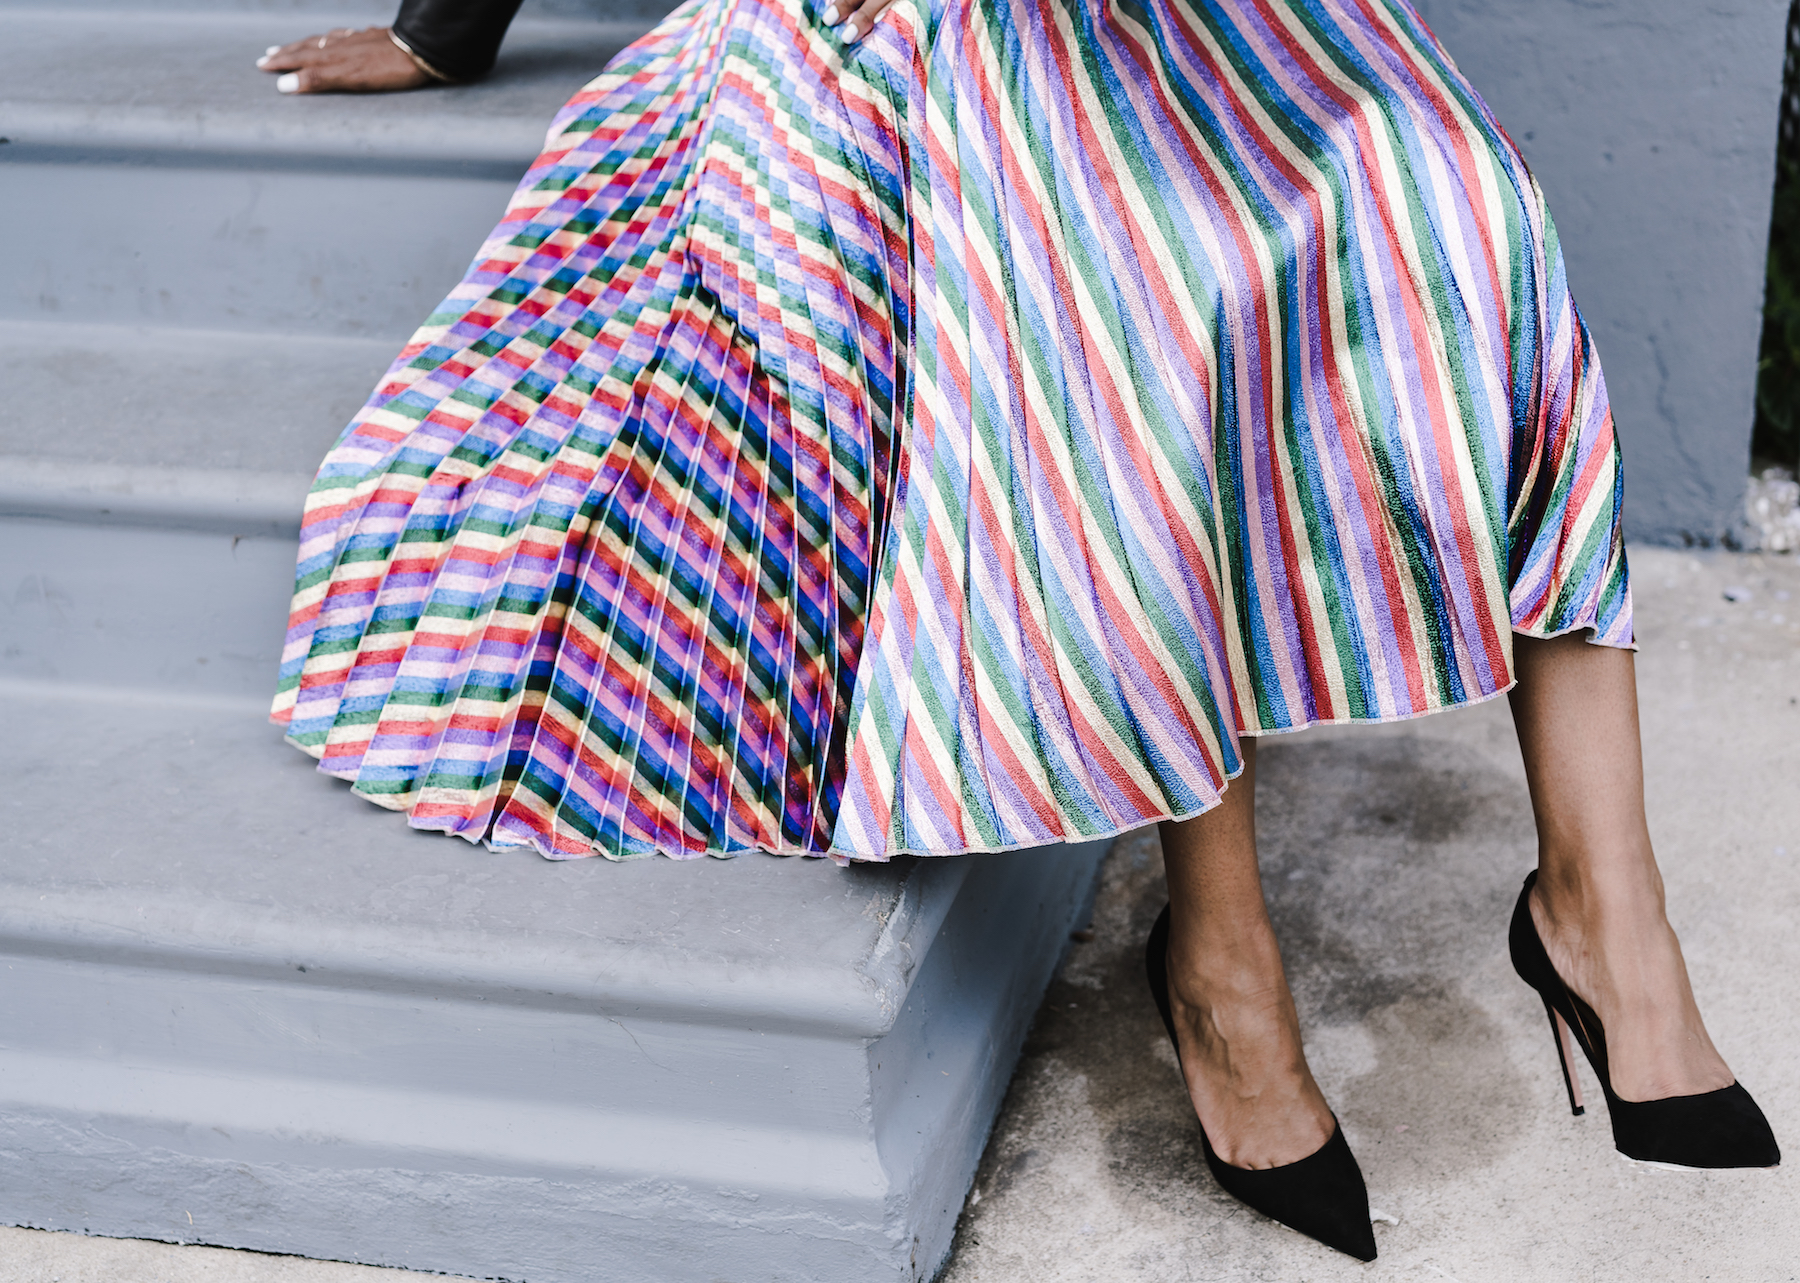 GUCCI Striped high-rise pleated midi skirt (Shop it  here ), AQUAZZURA Simply Irresistible suede pumps (Shop it  here )